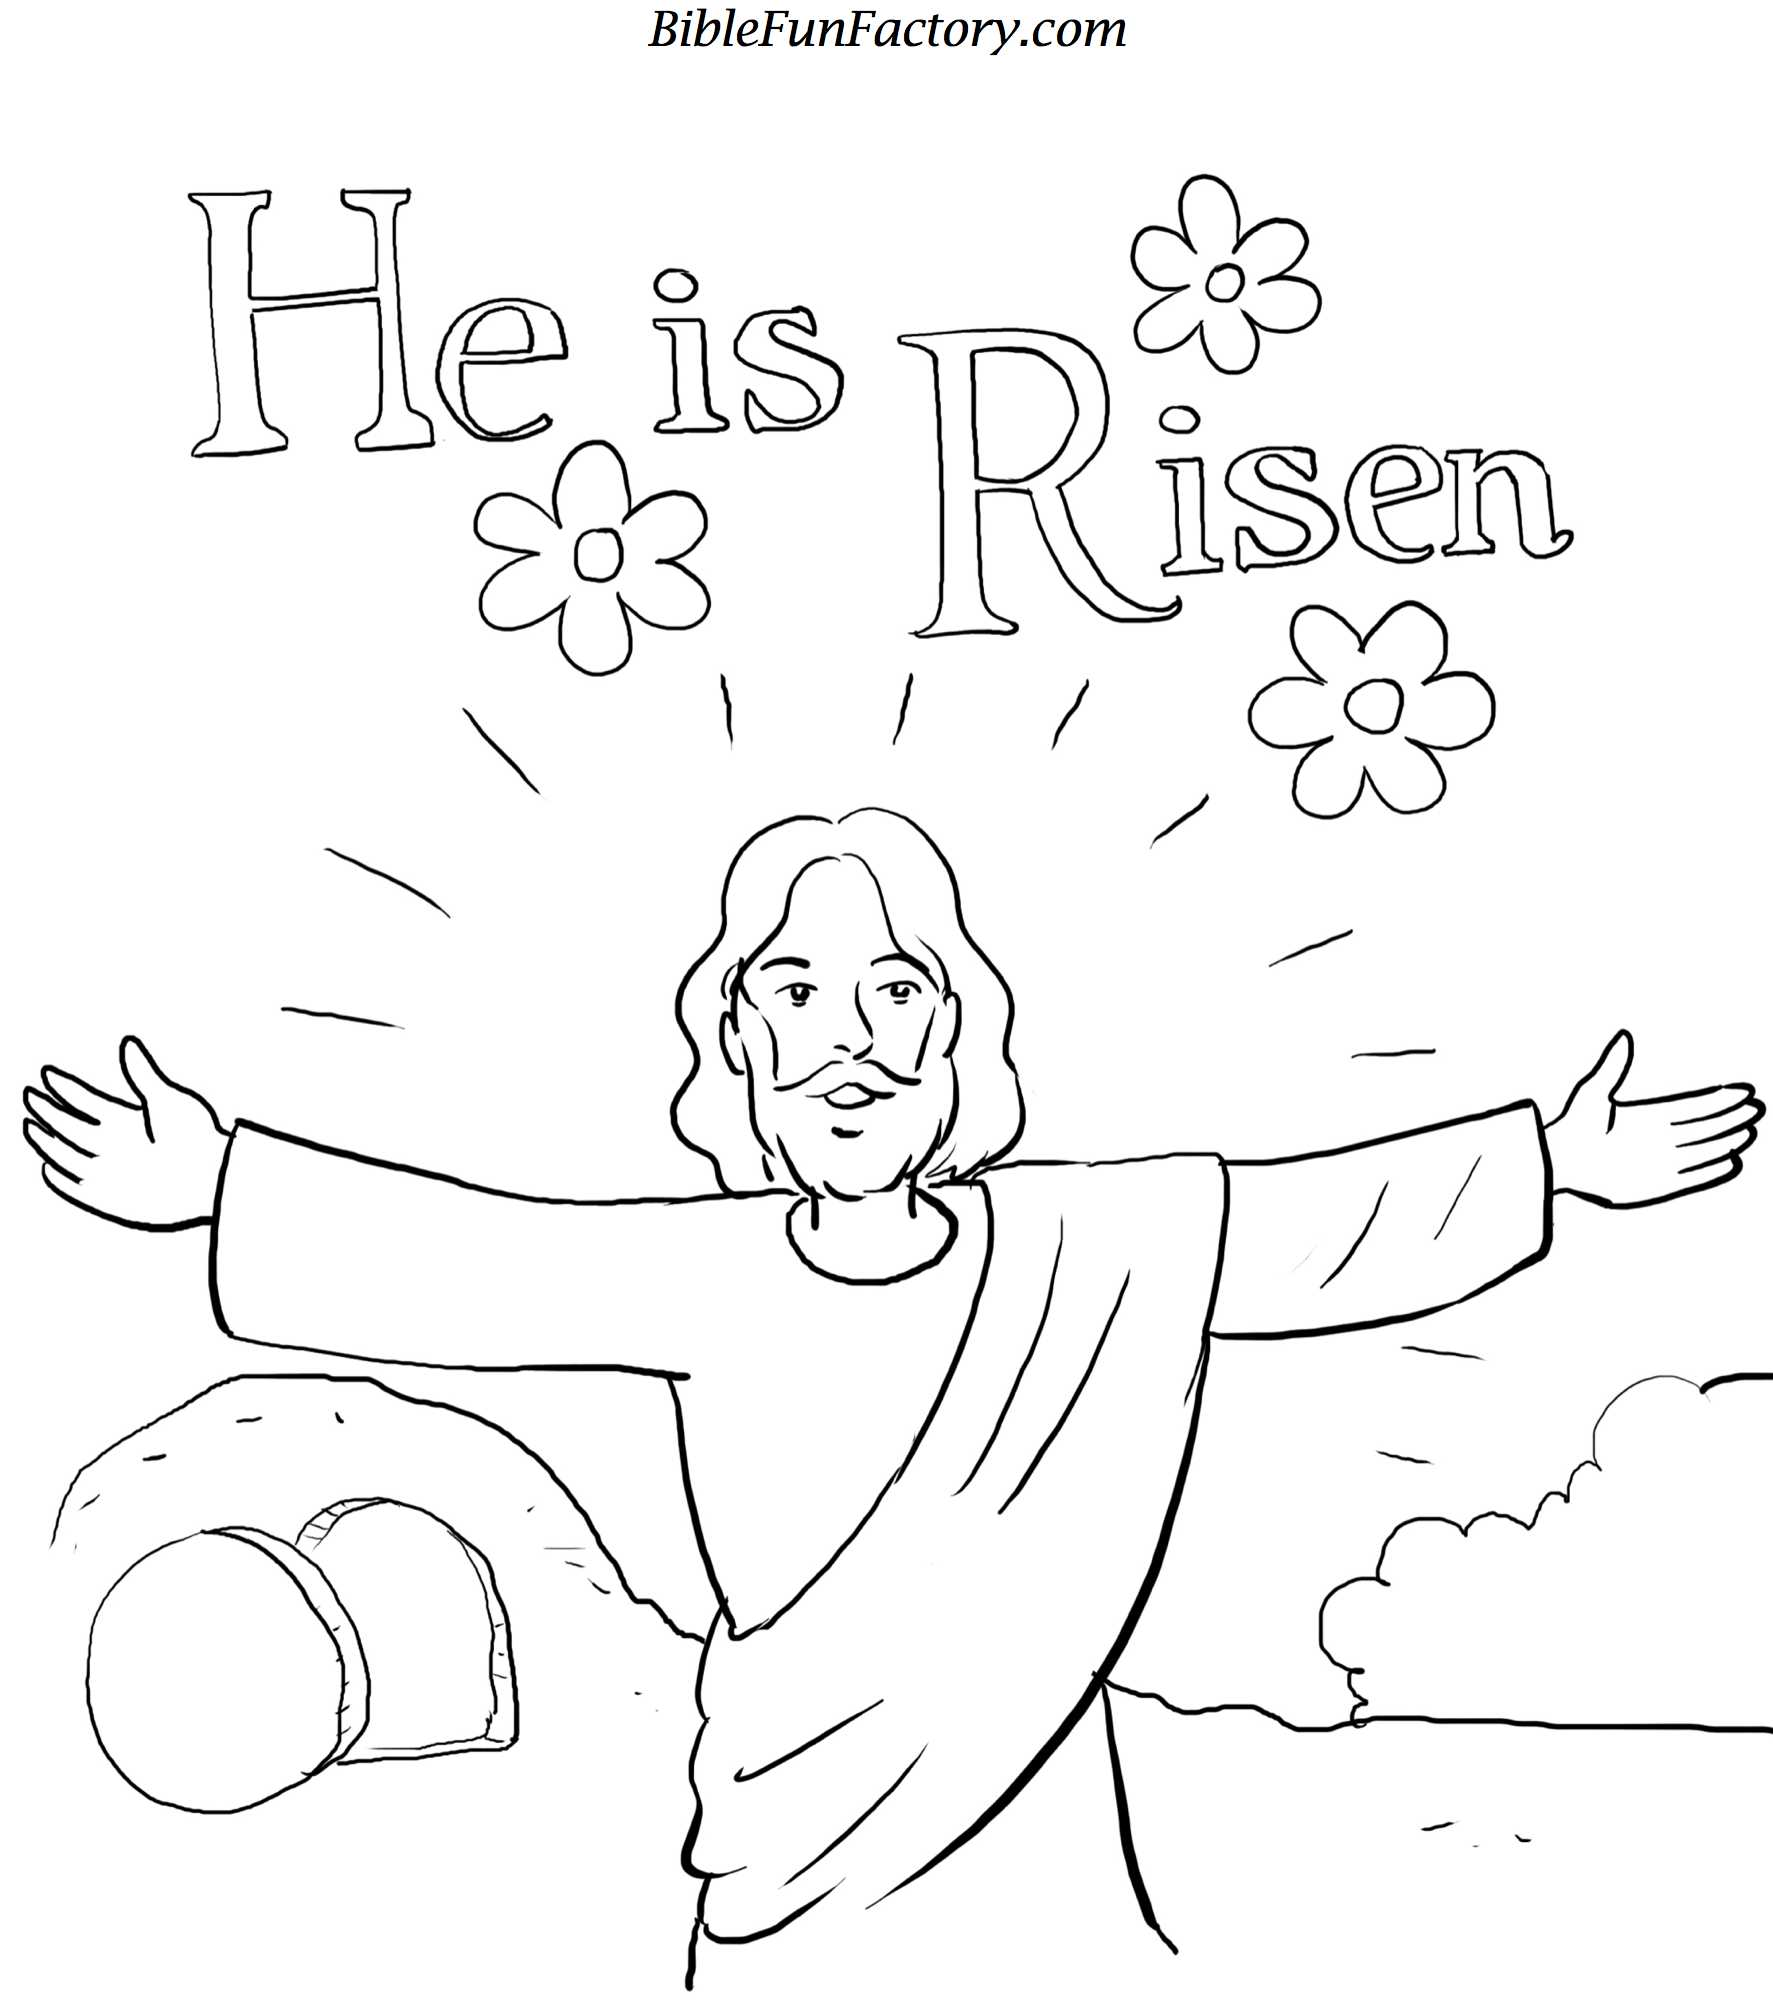 religious coloring pages for toddlers - photo#39